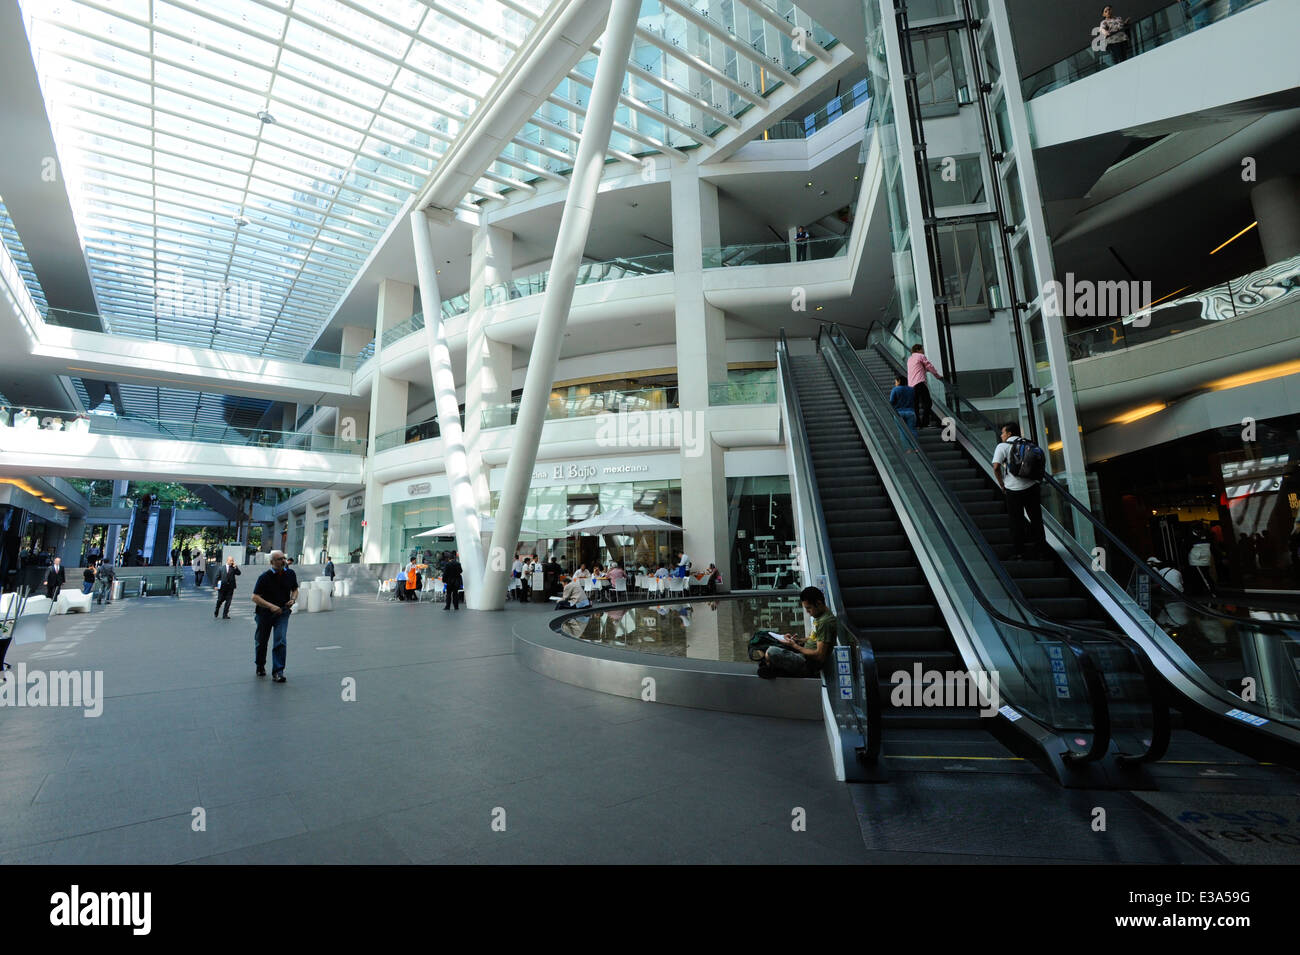 Reforma 222 shopping mall in the upscale Zona Rosa neighborhood of Mexico City, Mexico - Stock Image